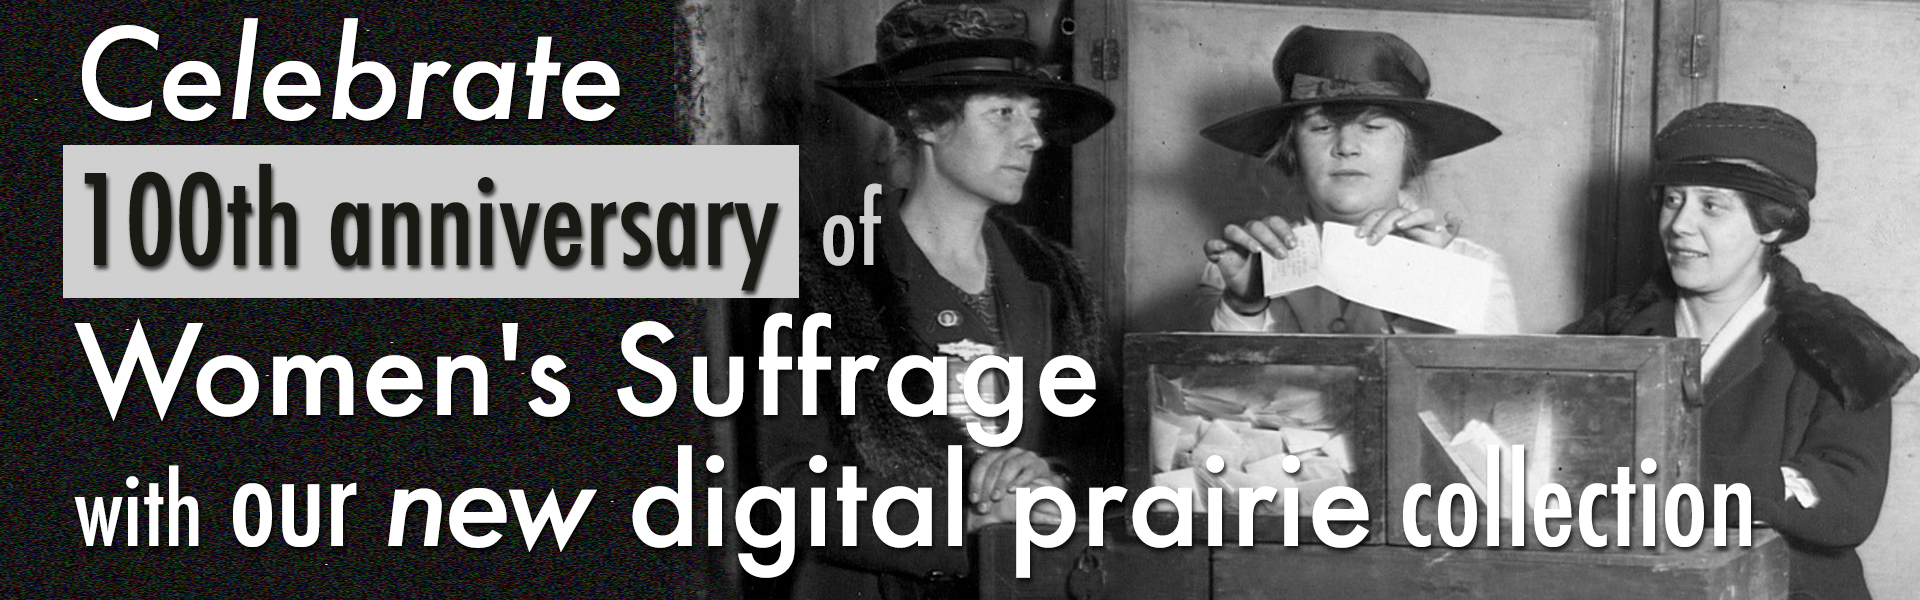 Celebrate 100 years of Women's Suffrage with the new Digital Prairie Collection